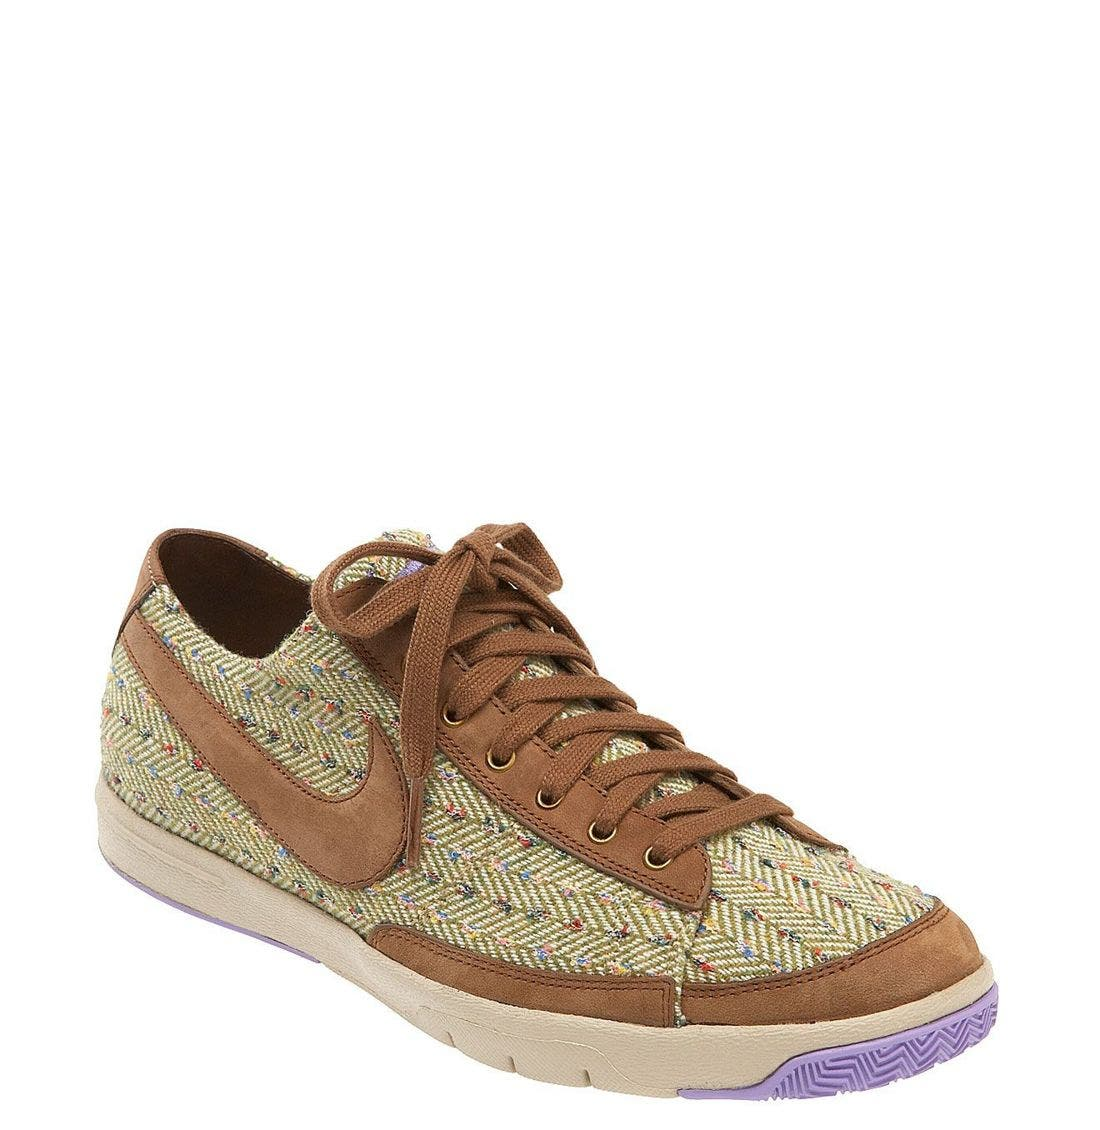 Nike 'Blazer Low' Nordstrom Athletic Zapato Mujer Nordstrom Low' eac492